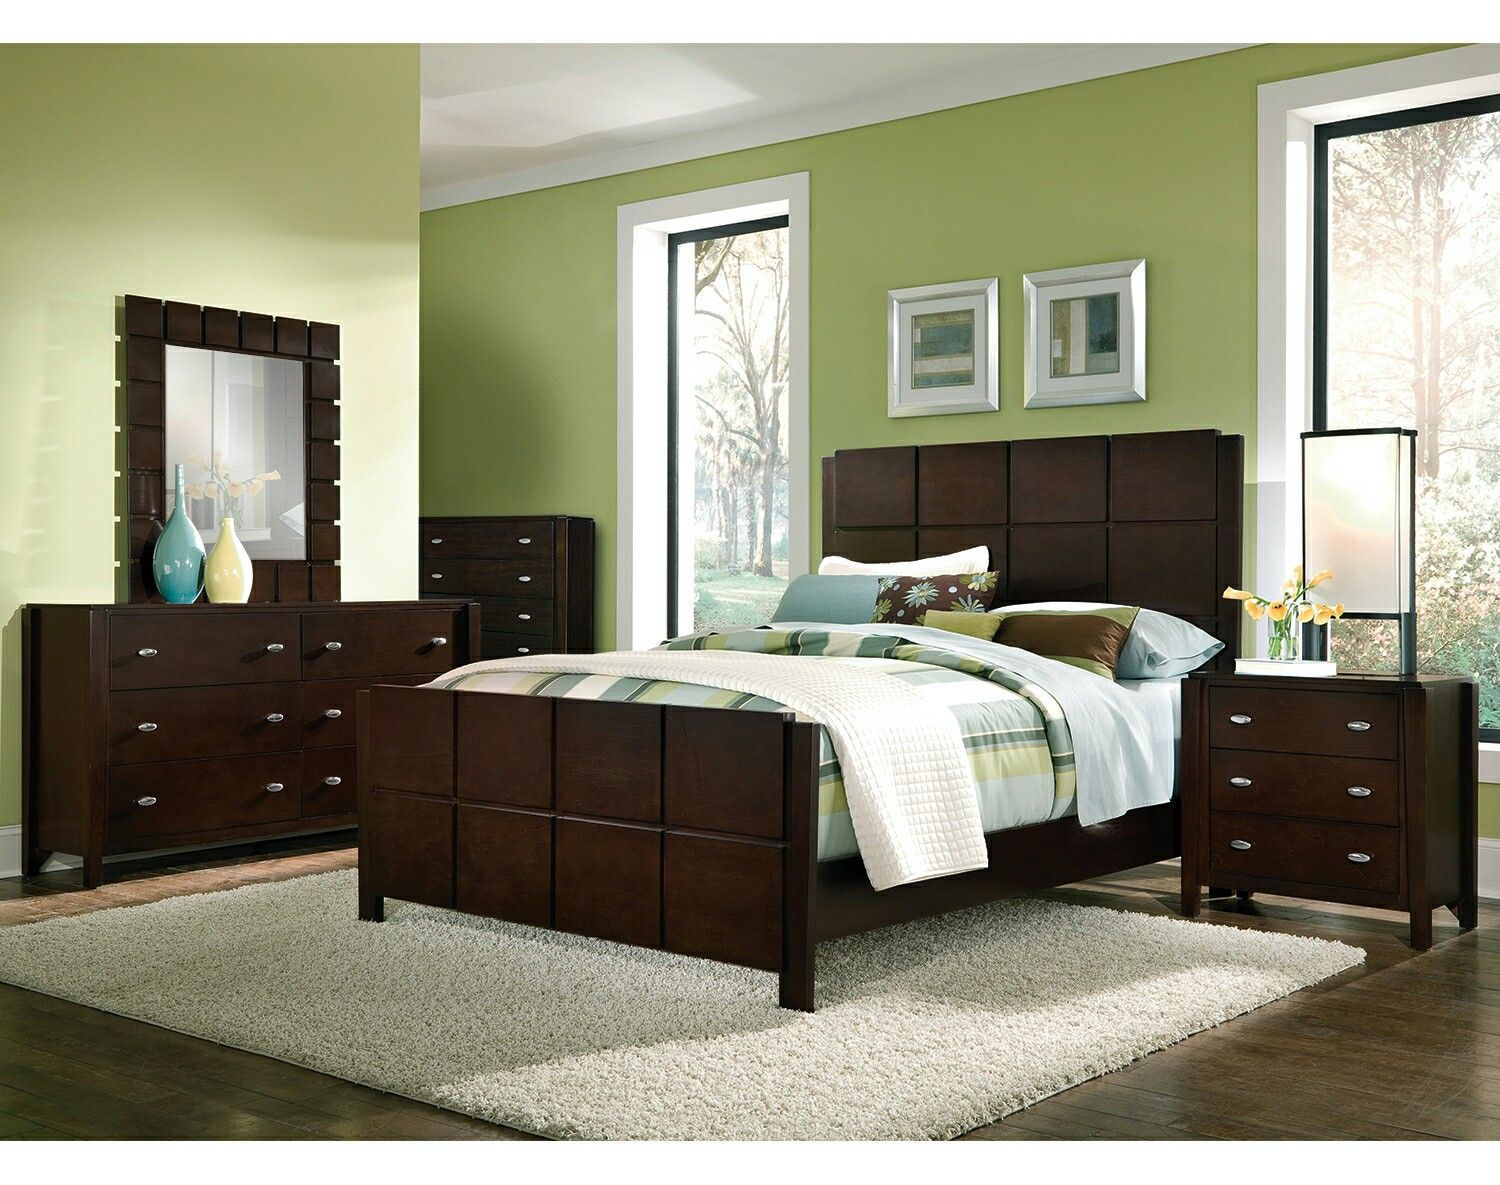 Clarion bedroom collection value city furniture queen wall bed clarion bedroom collection value city furniture queen wall bed with piers 109999 for the house pinterest wall beds city furniture and bedrooms amipublicfo Image collections